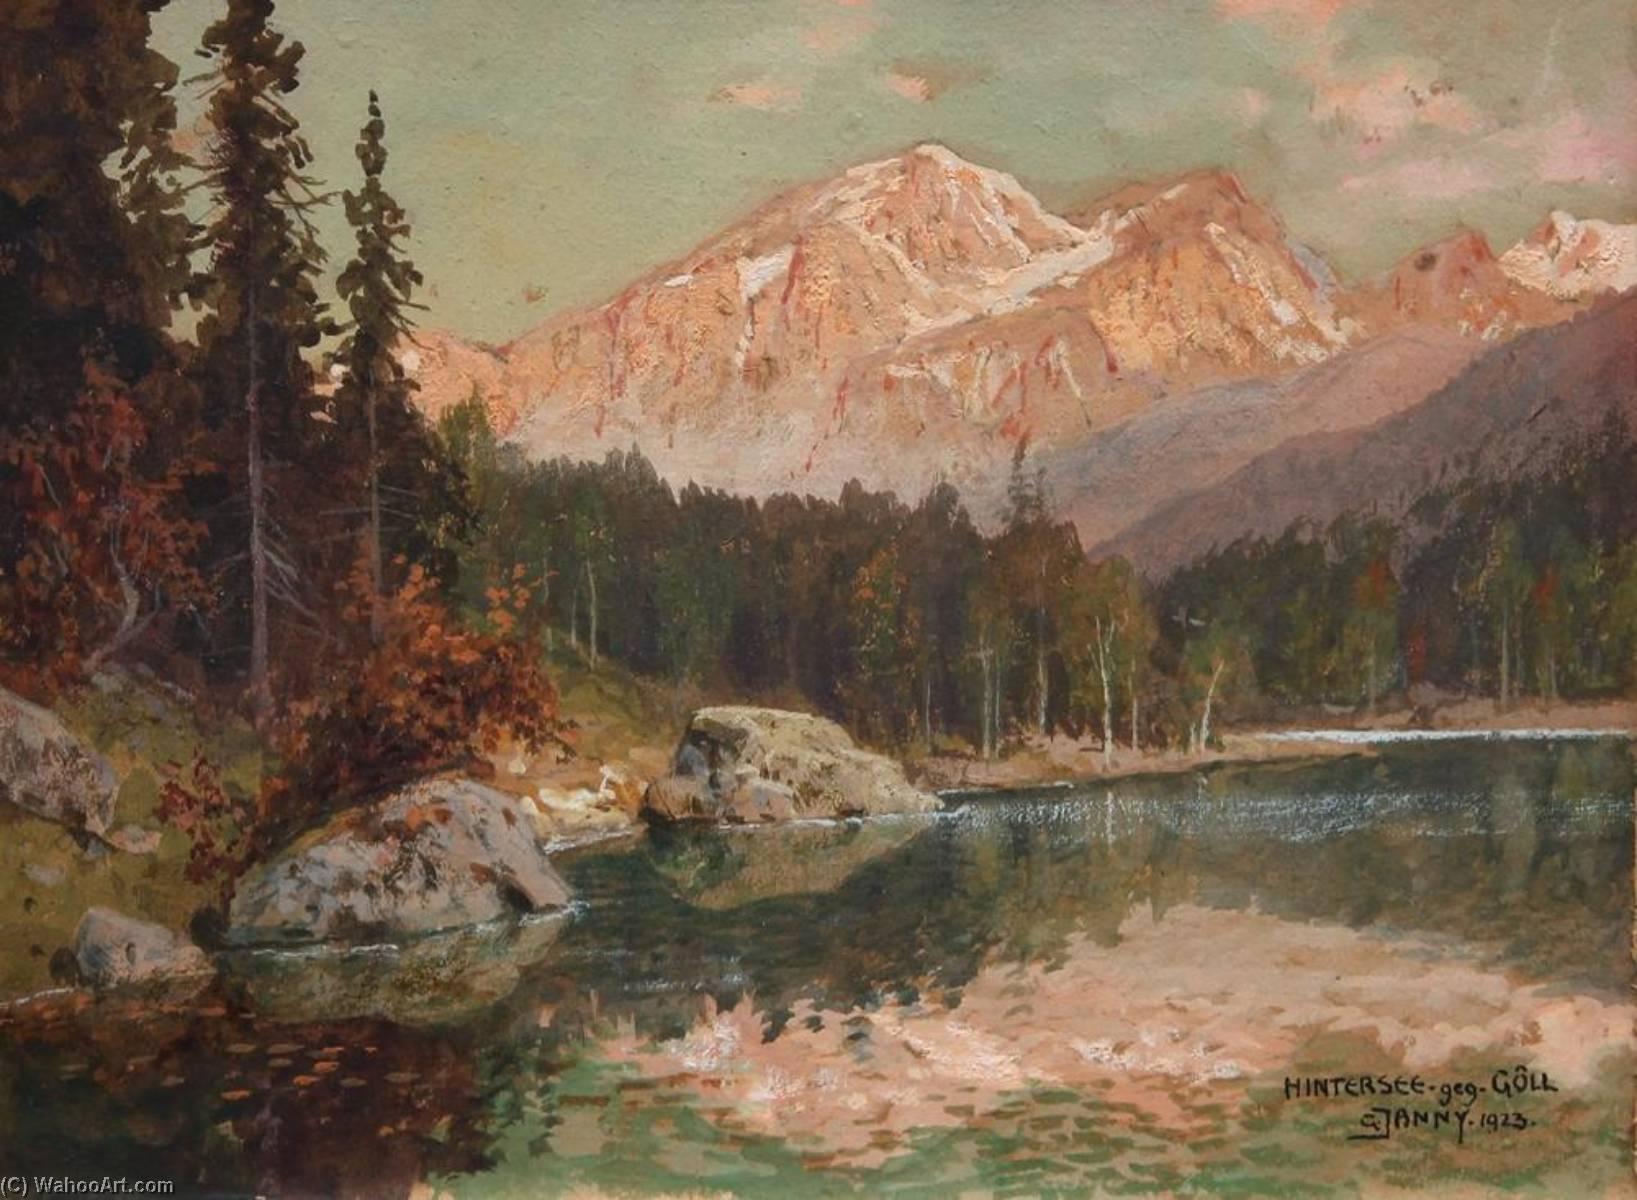 Hintersee, Watercolour by Georg Janny